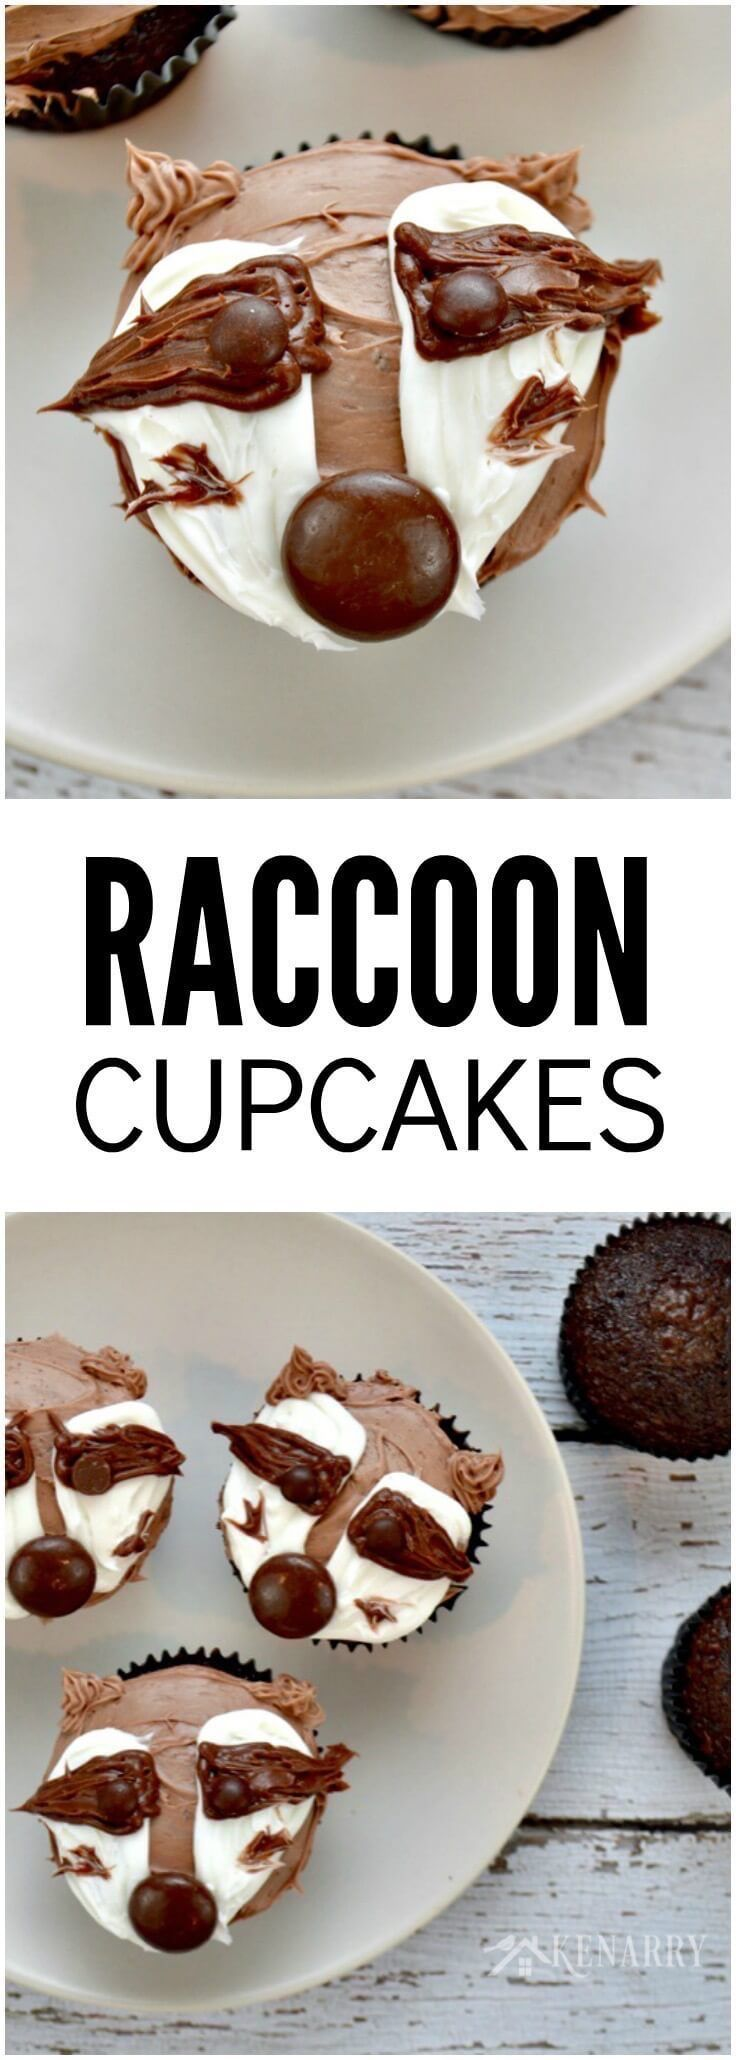 These raccoon cupcakes are SO cute! With this video tutorial, it would be really easy to make these if you need an idea for an animal themed dessert for a birthday party, a kid's treat for school or a cupcake walk prize.